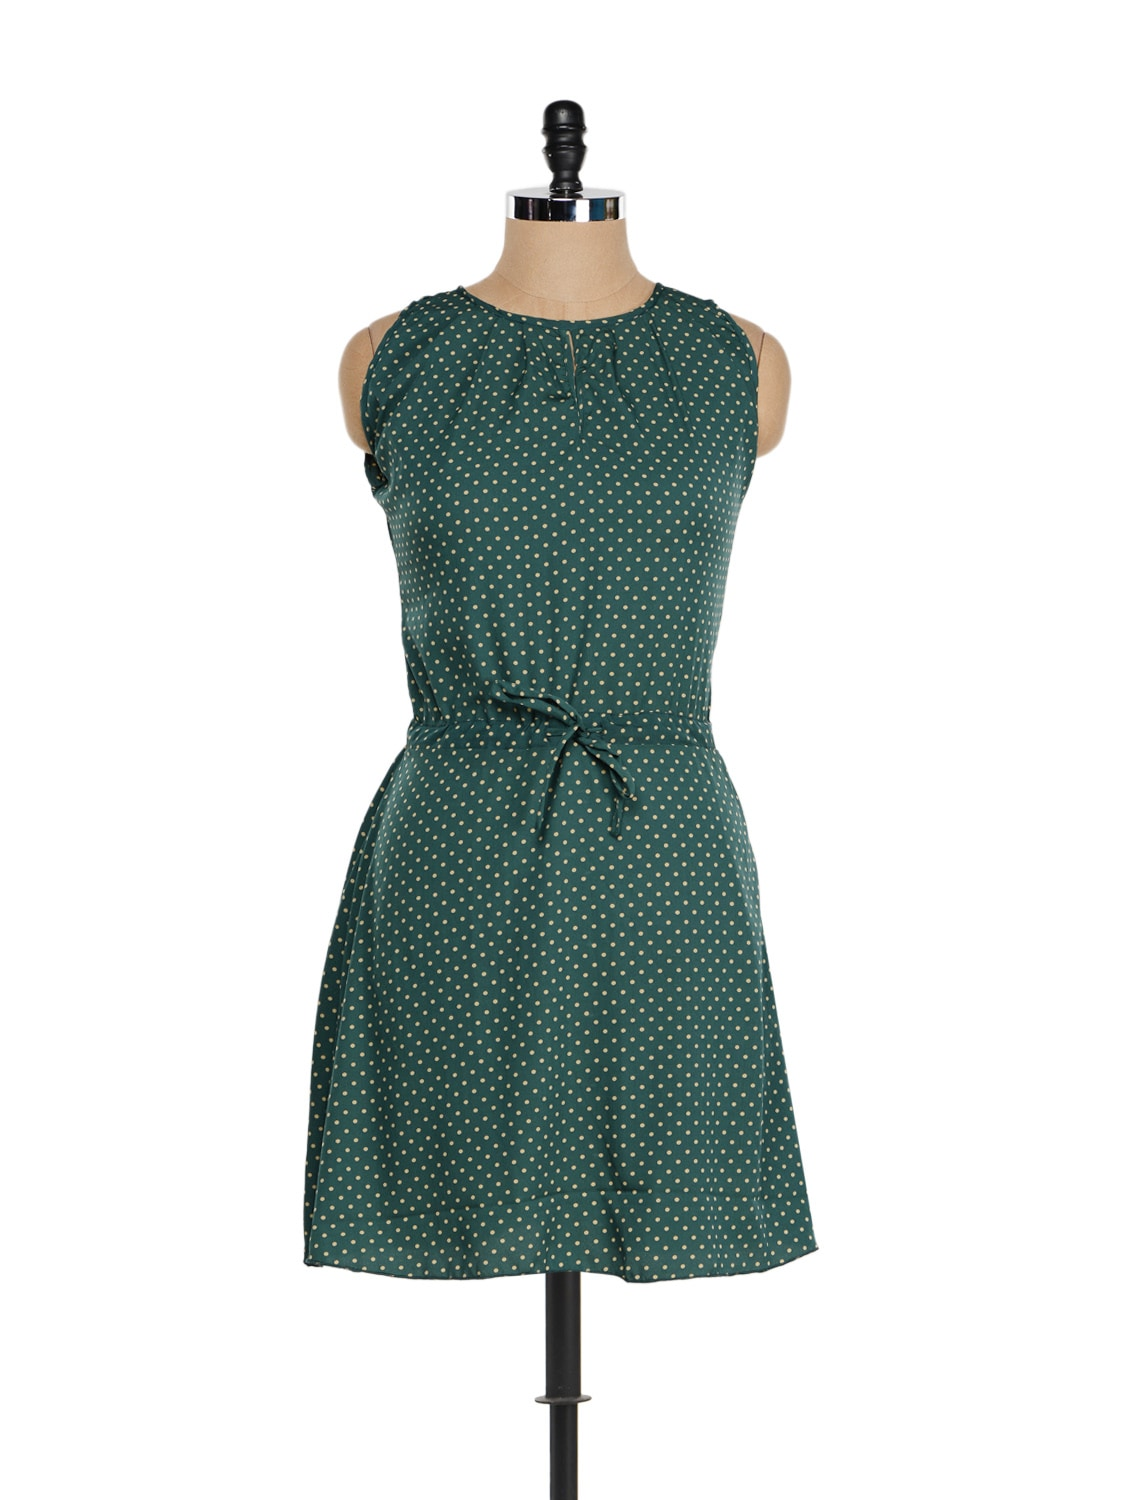 Bottle Green Polka Dotted Dress - Being Fab